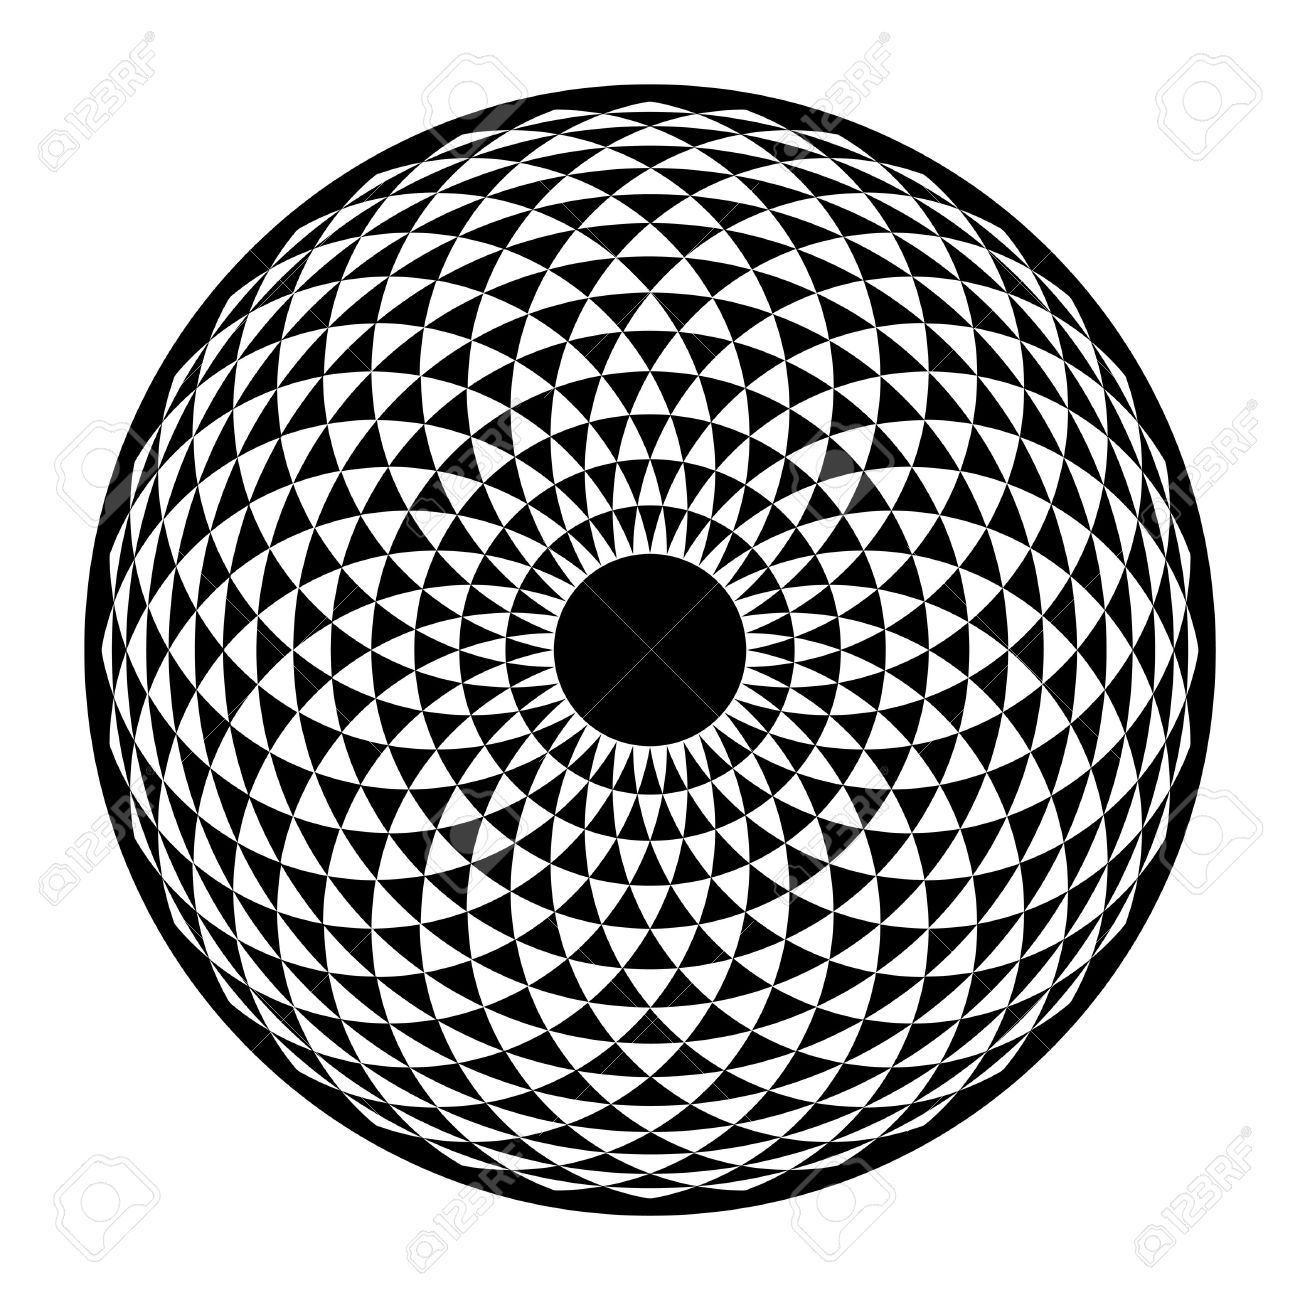 Torus Yantra, Hypnotic Eye Sacred Geometry Basic Element. Vector ...